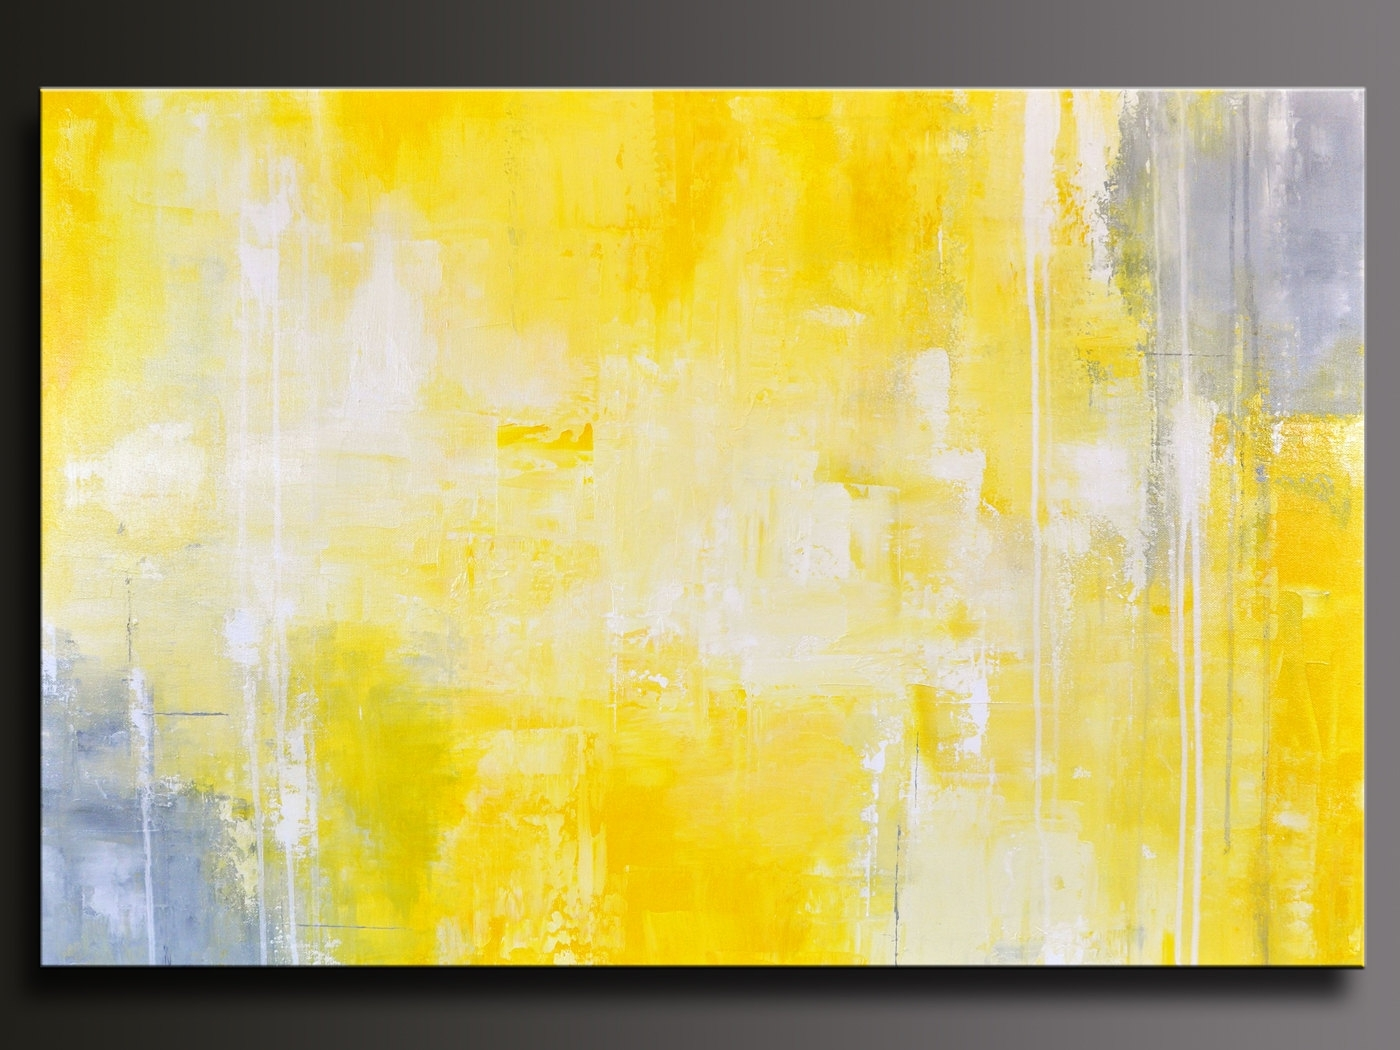 Yellow And Grey Wall Art Pertaining To Current Wall Art Designs: Yellow And Gray Wall Art Diy Wall Art Washington (View 3 of 15)